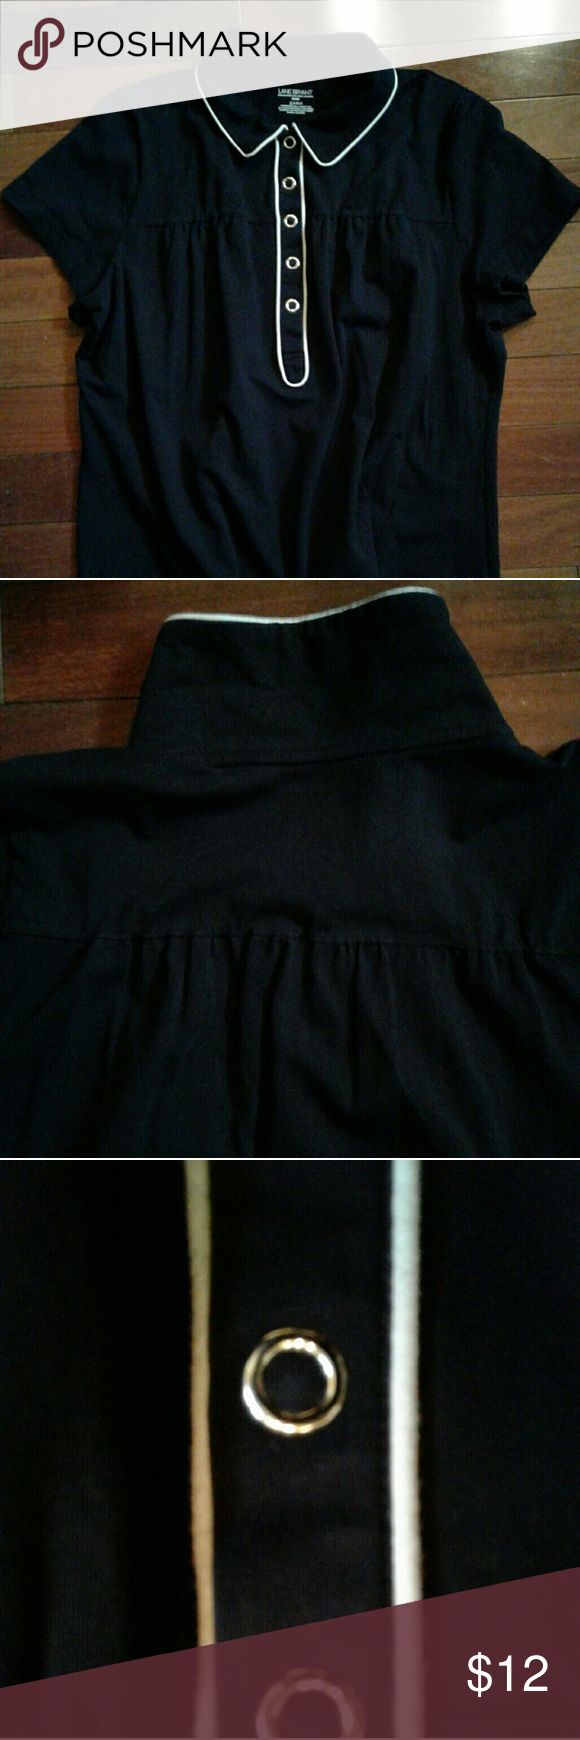 Lane Bryant black comfy shirt Women's black short sleeve top with white borders by Lane Bryant. Round collar, quality silver snaps and a roomy feel for comfort. Great pre-loves condition!! Lane Bryant Tops Blouses